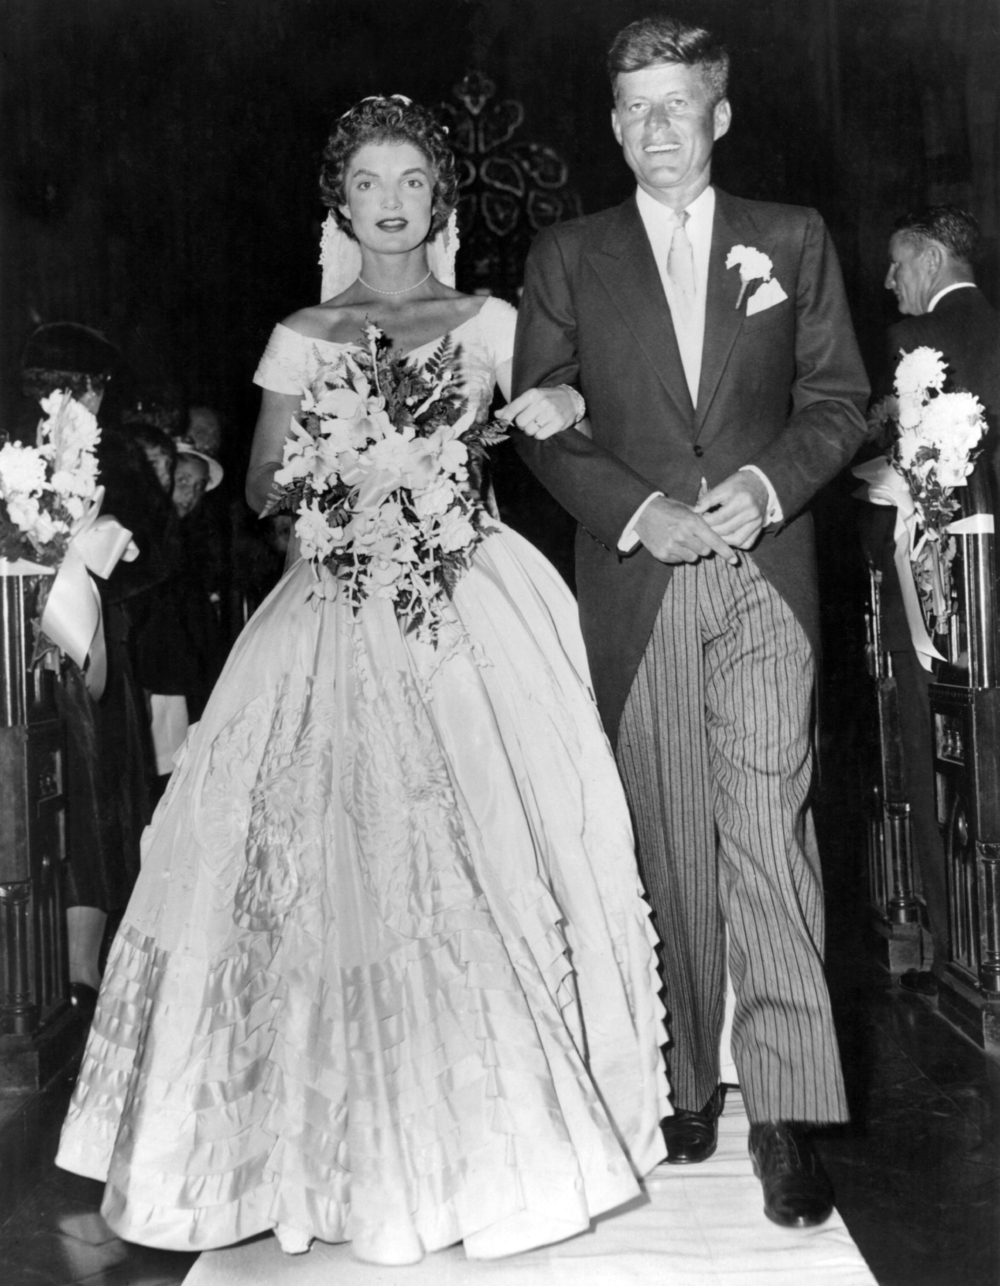 Jackie O and JFK's legendary wedding featured a heavily embellished gown | follow along on Instagram @ thewildflowers.events